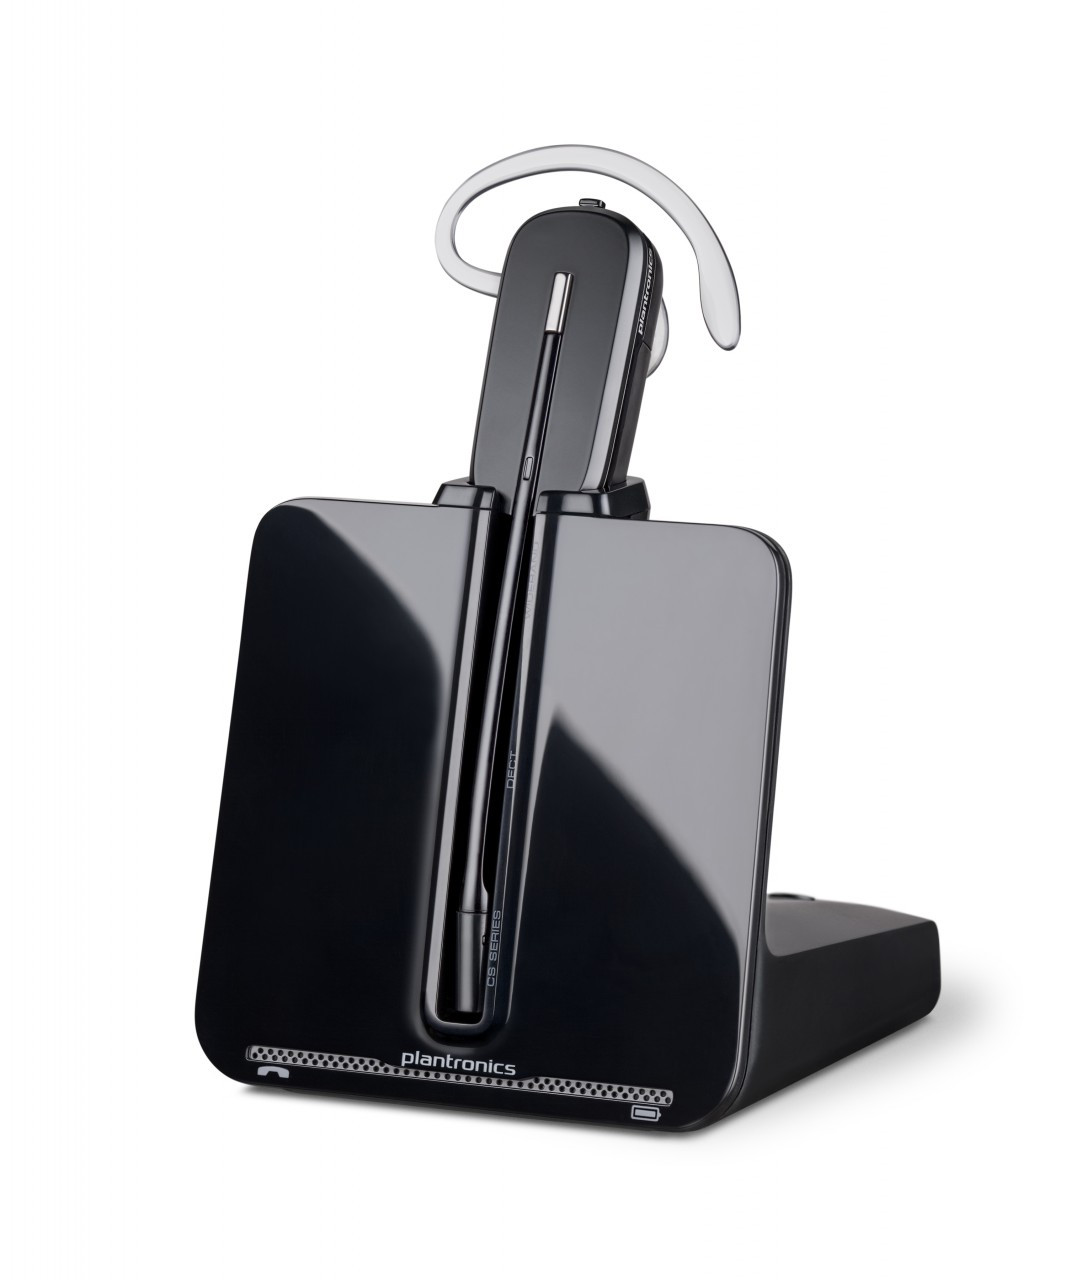 Cisco Compatible Plantronics CS540, # 84693-01 Wireless Mono Convertible  Headset | IP Phones: Linksys SPA, 6945, 78xx, 79xx, 88xx, 89xx